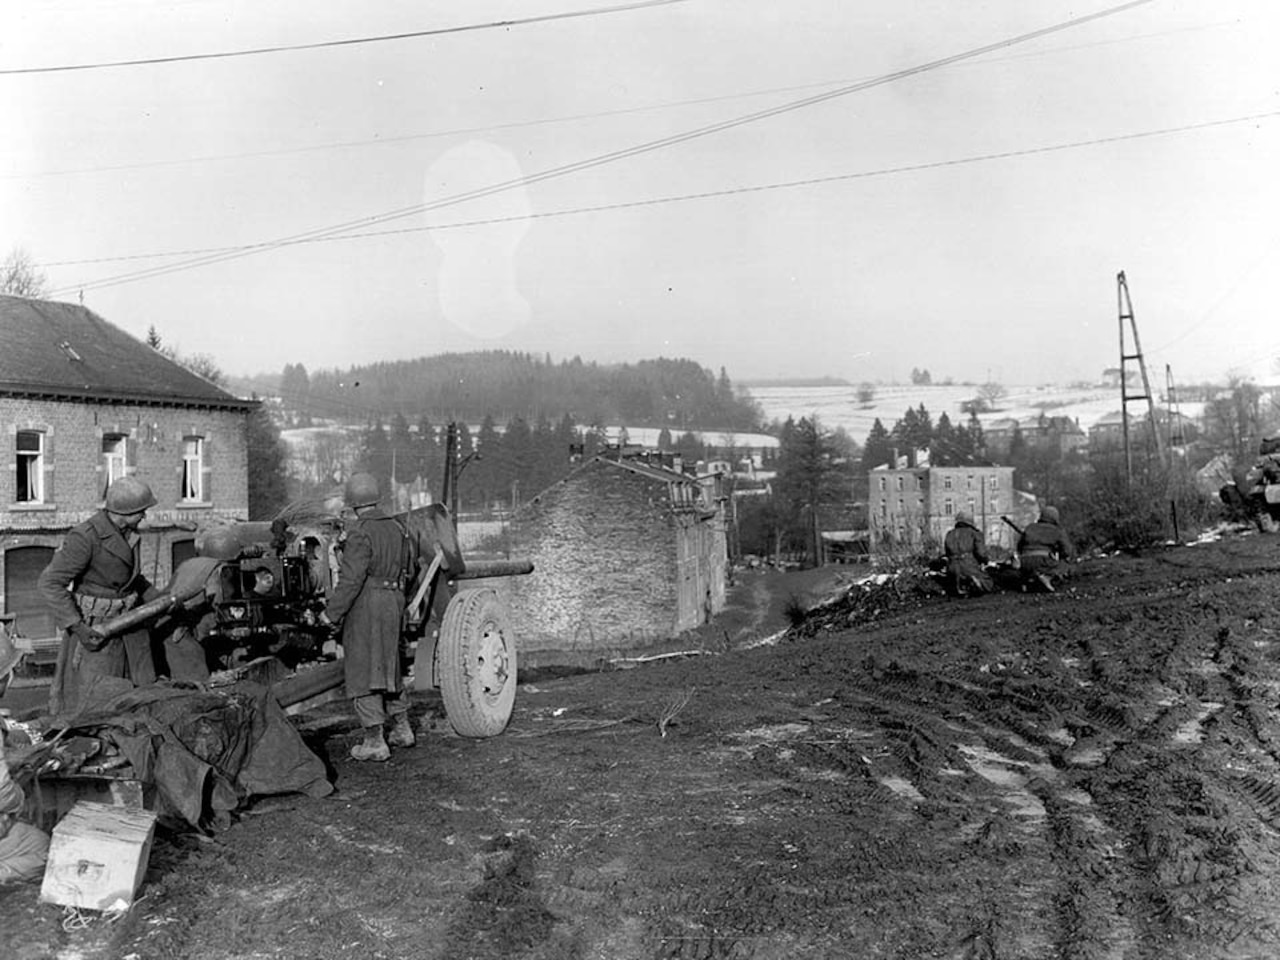 Two men prepare a field artillery gun while two more men crouch down looking in the distance at a town.